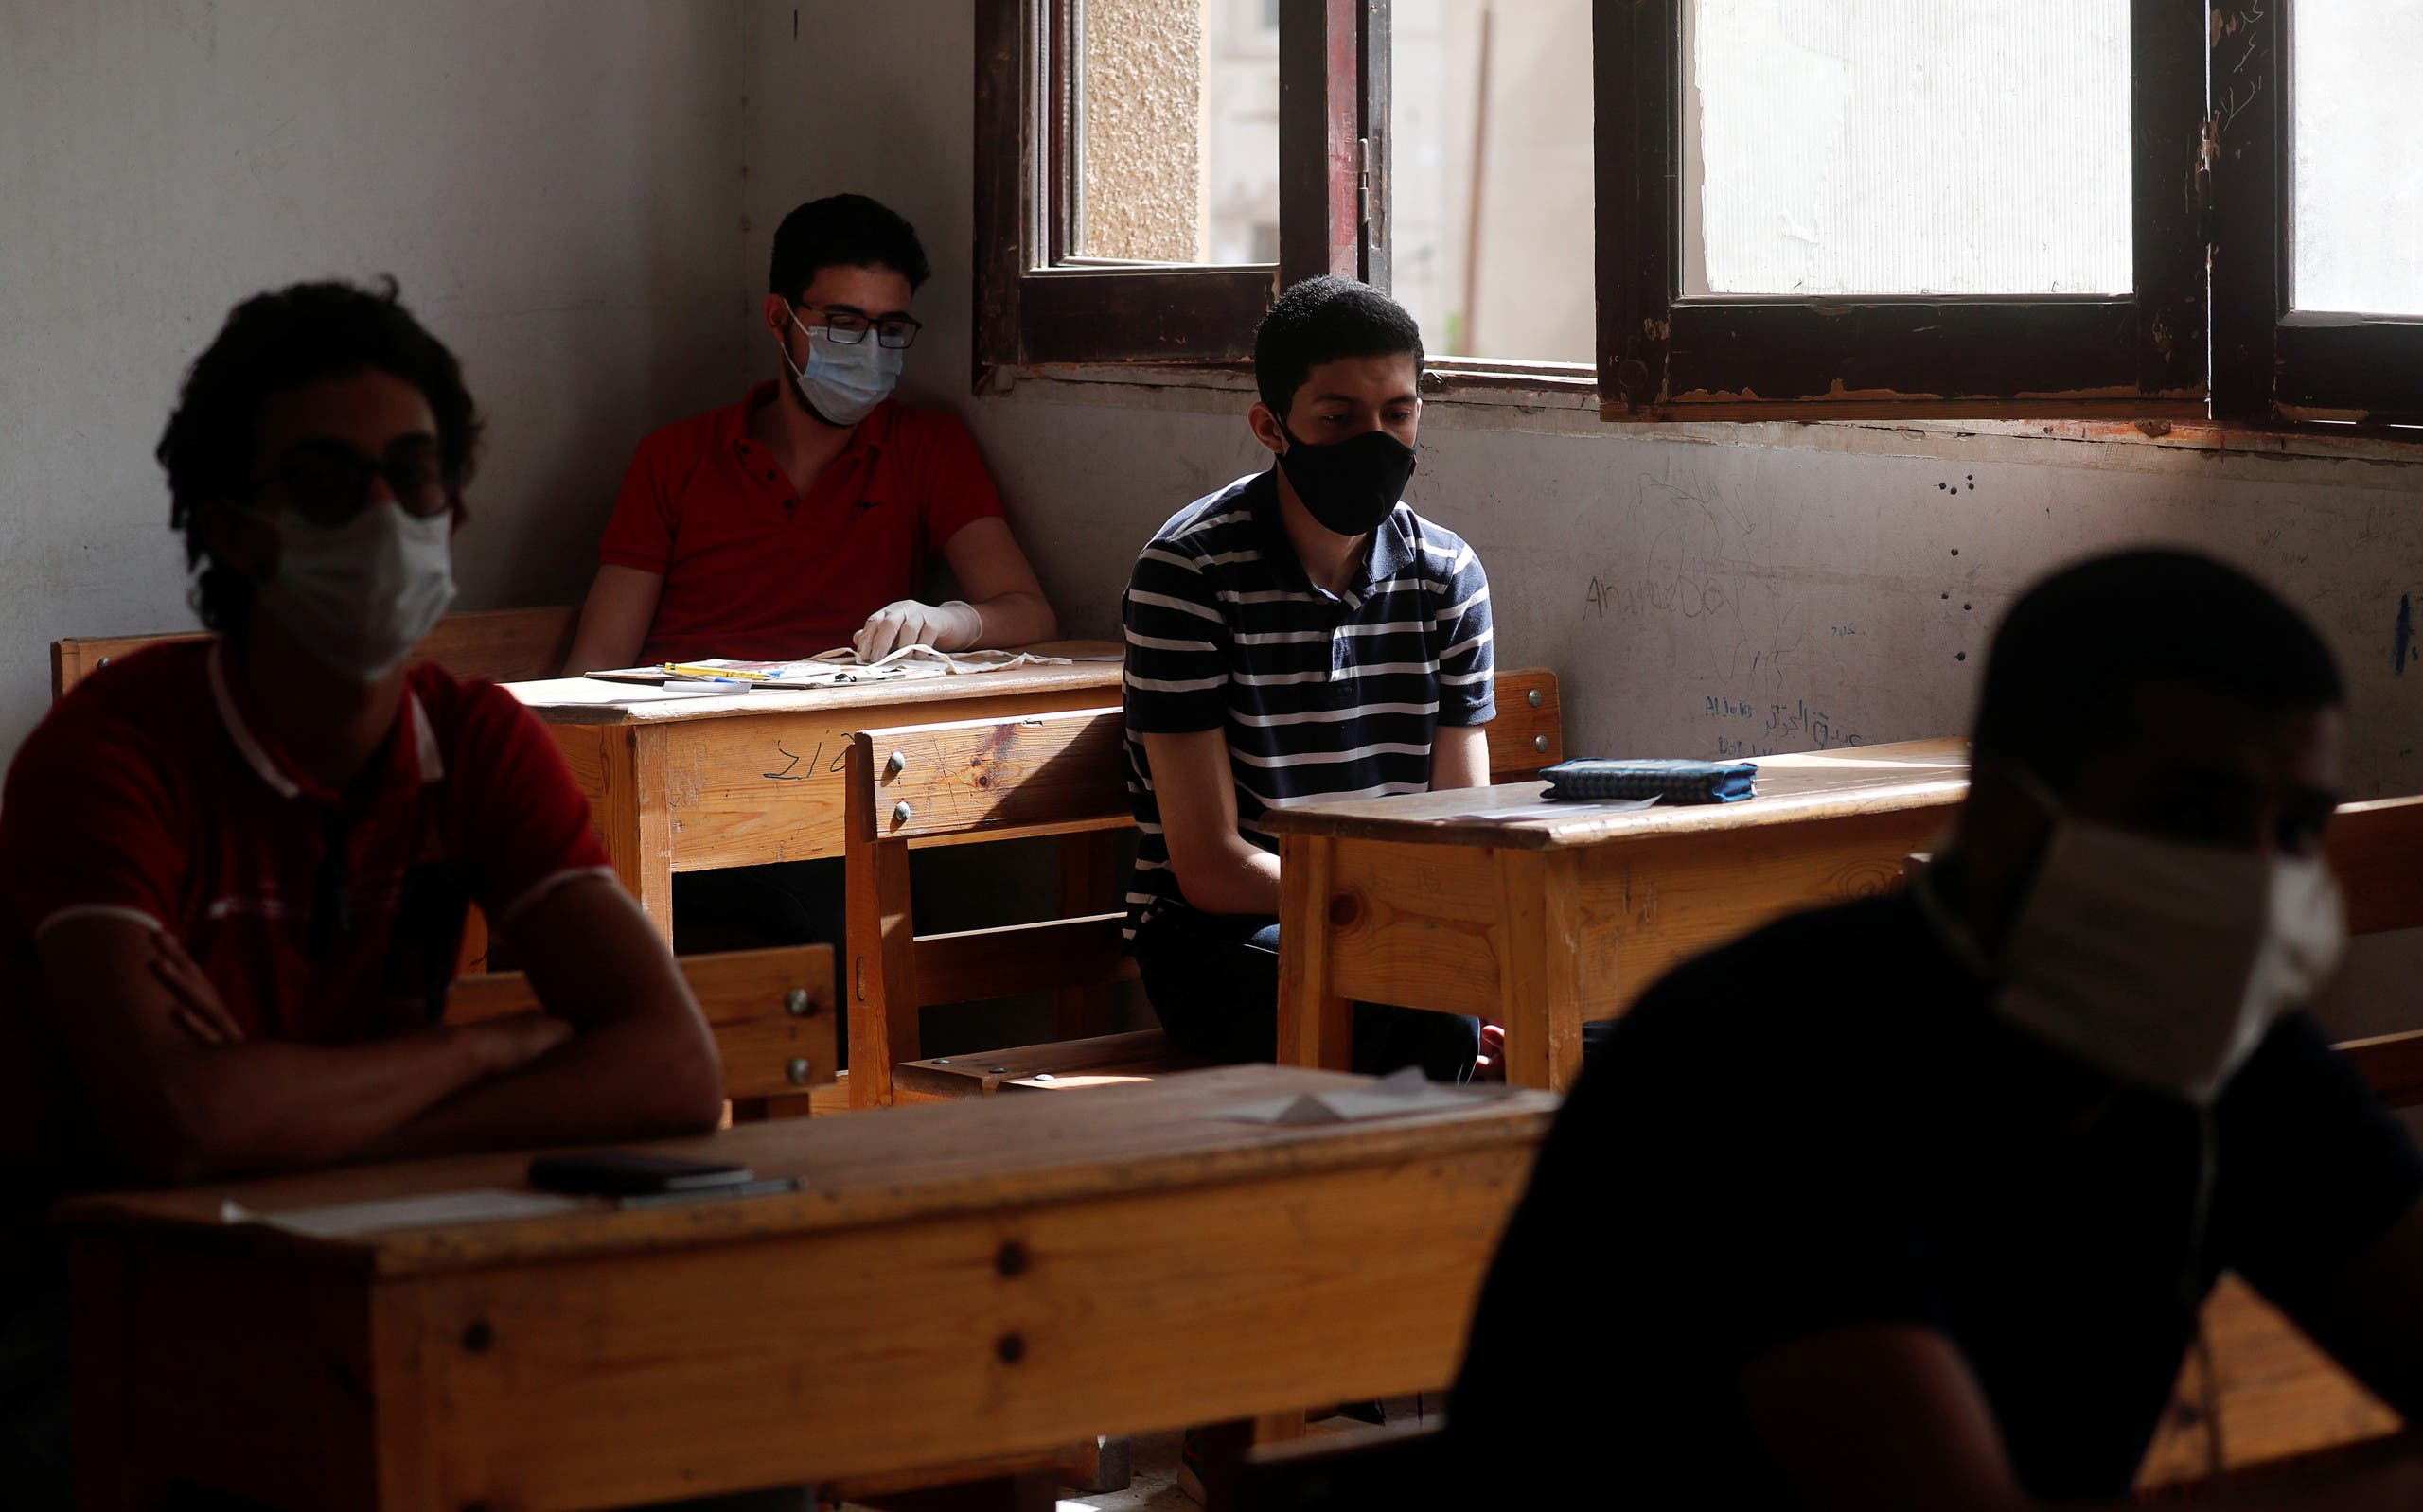 Egyptian high school students wear protective face masks as they attend the first day of final exams, amid concerns over the coronavirus disease (COVID-19) outbreak, in Cairo, Egypt June 21, 2020. (Reuters)